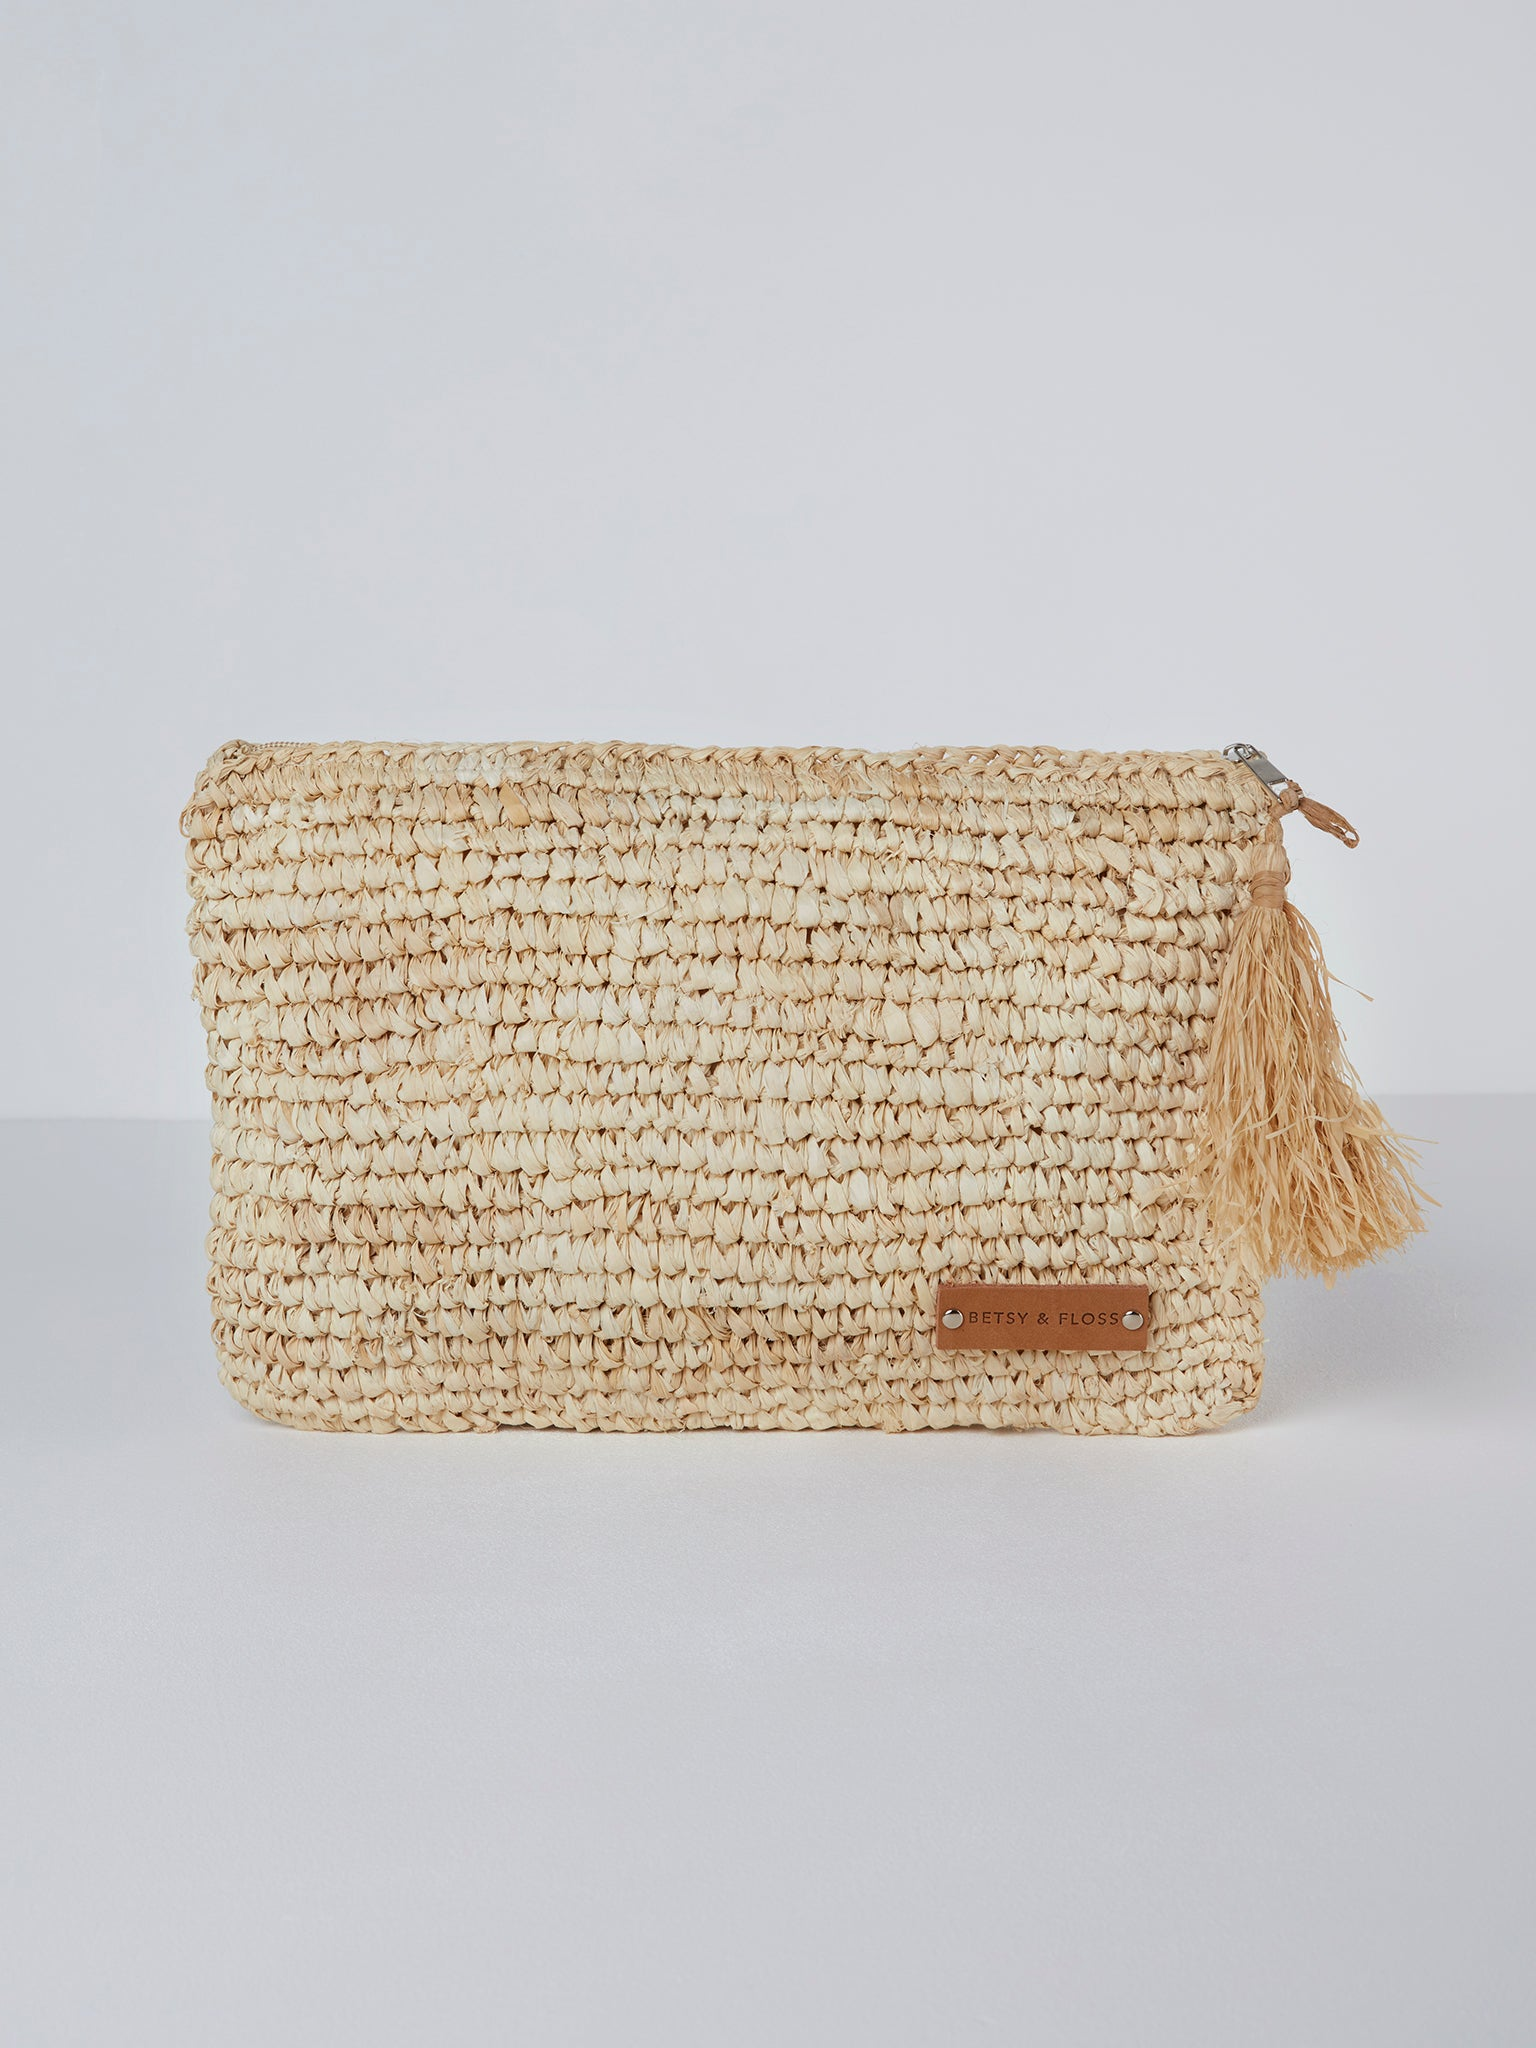 The Pollensa Woven Bag | Betsy & Floss